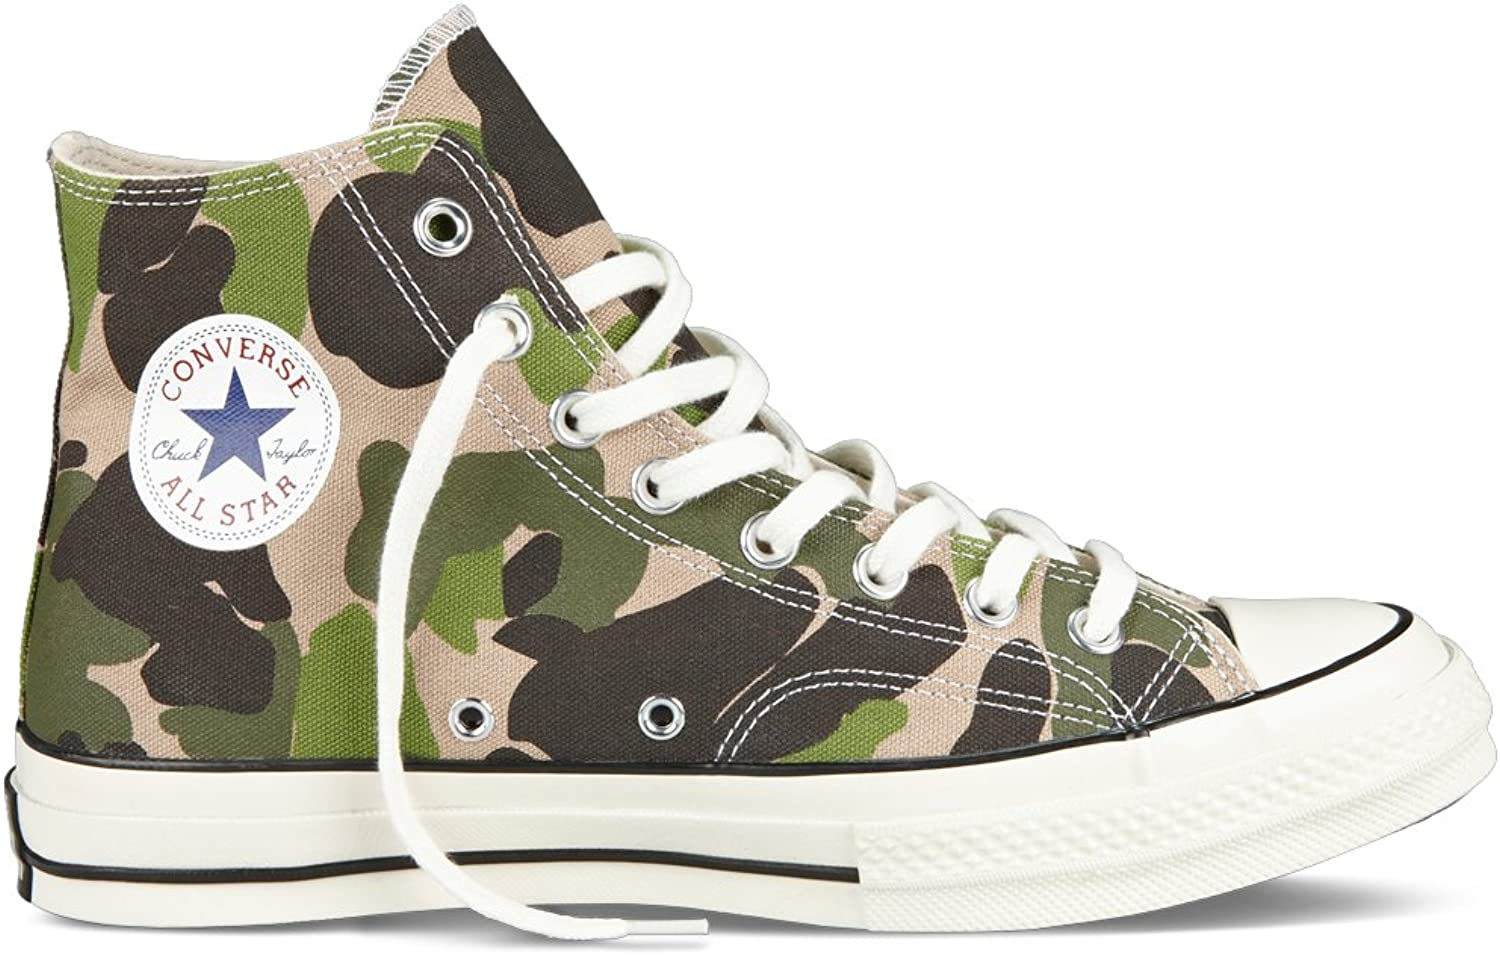 CONVERSE Chuck Taylor All Star '70 Unisex Casual shoes 142280C